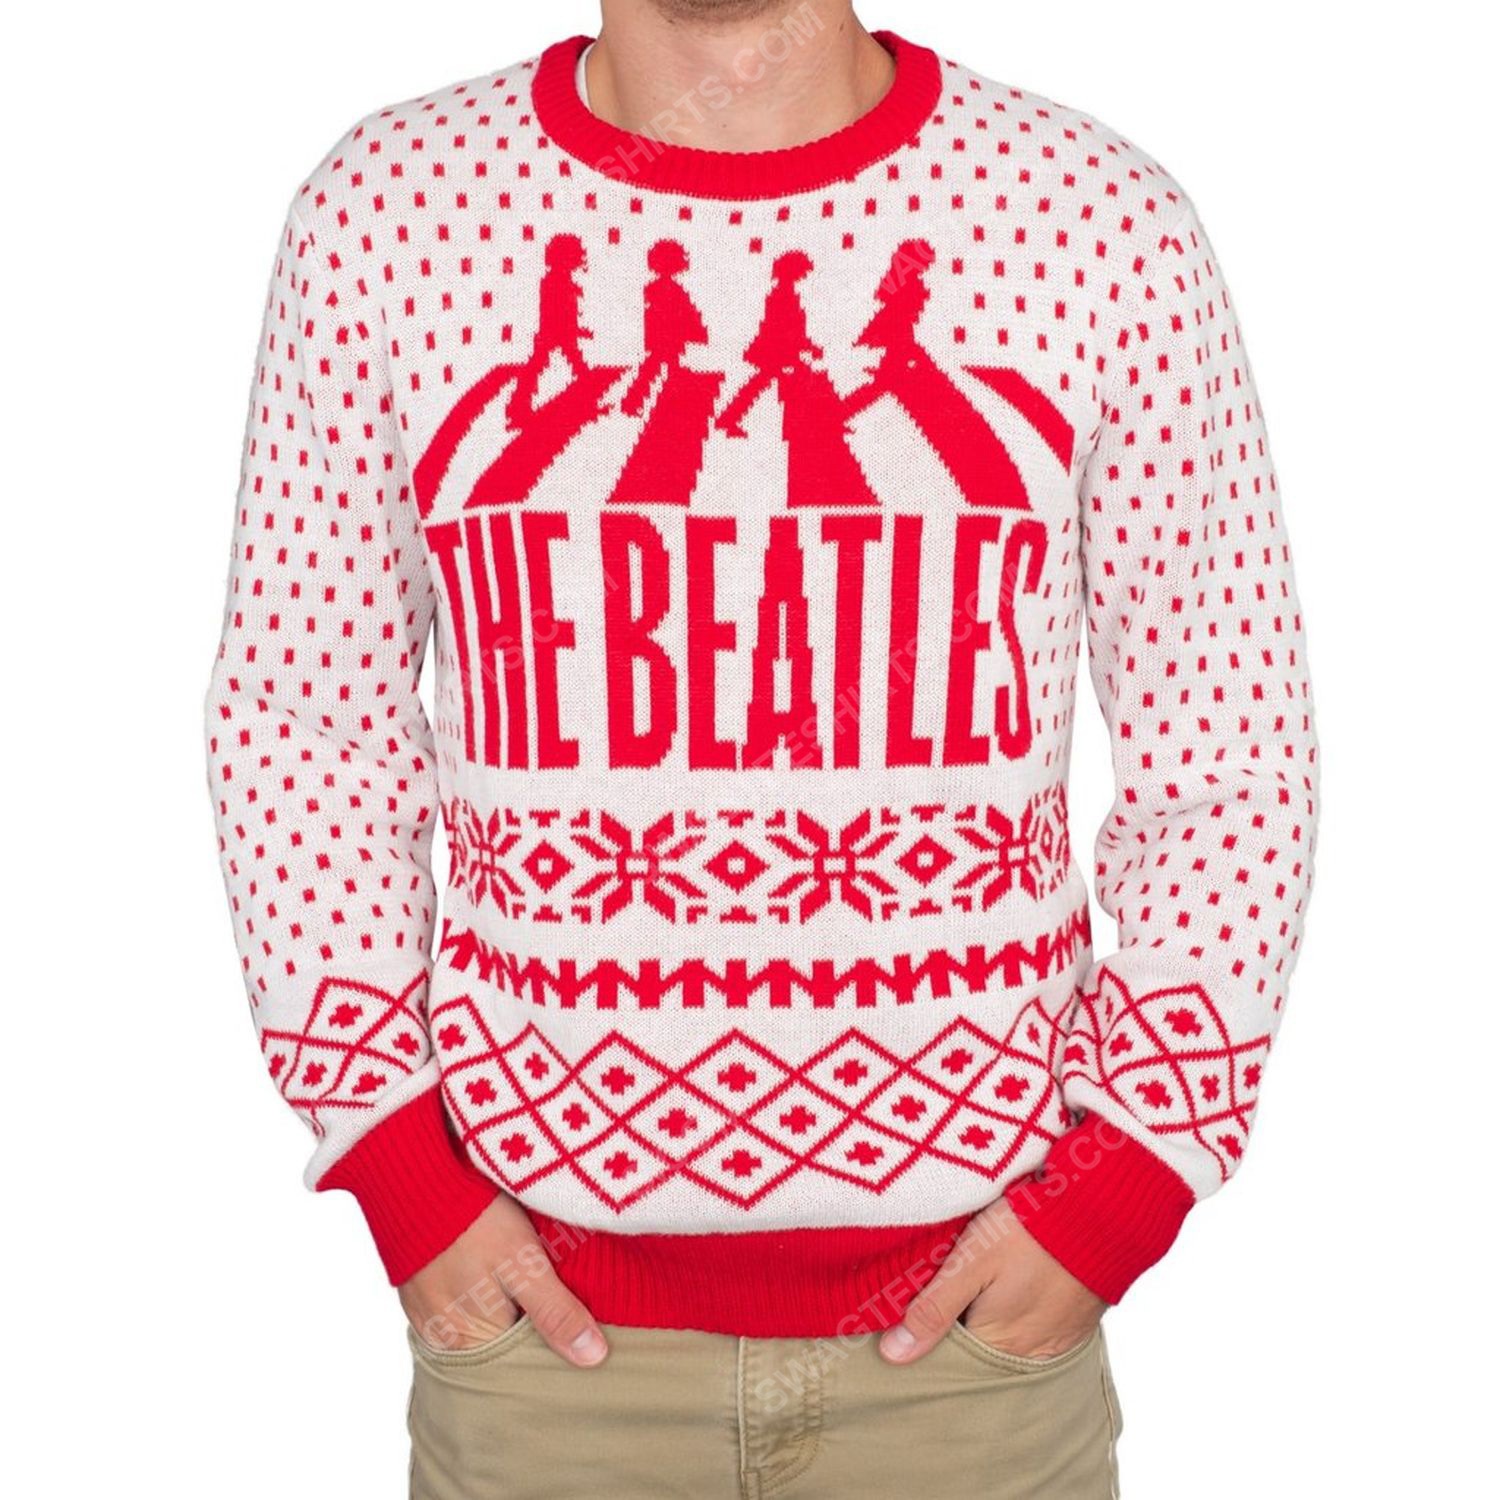 The beatles abbey road full print ugly christmas sweater 2